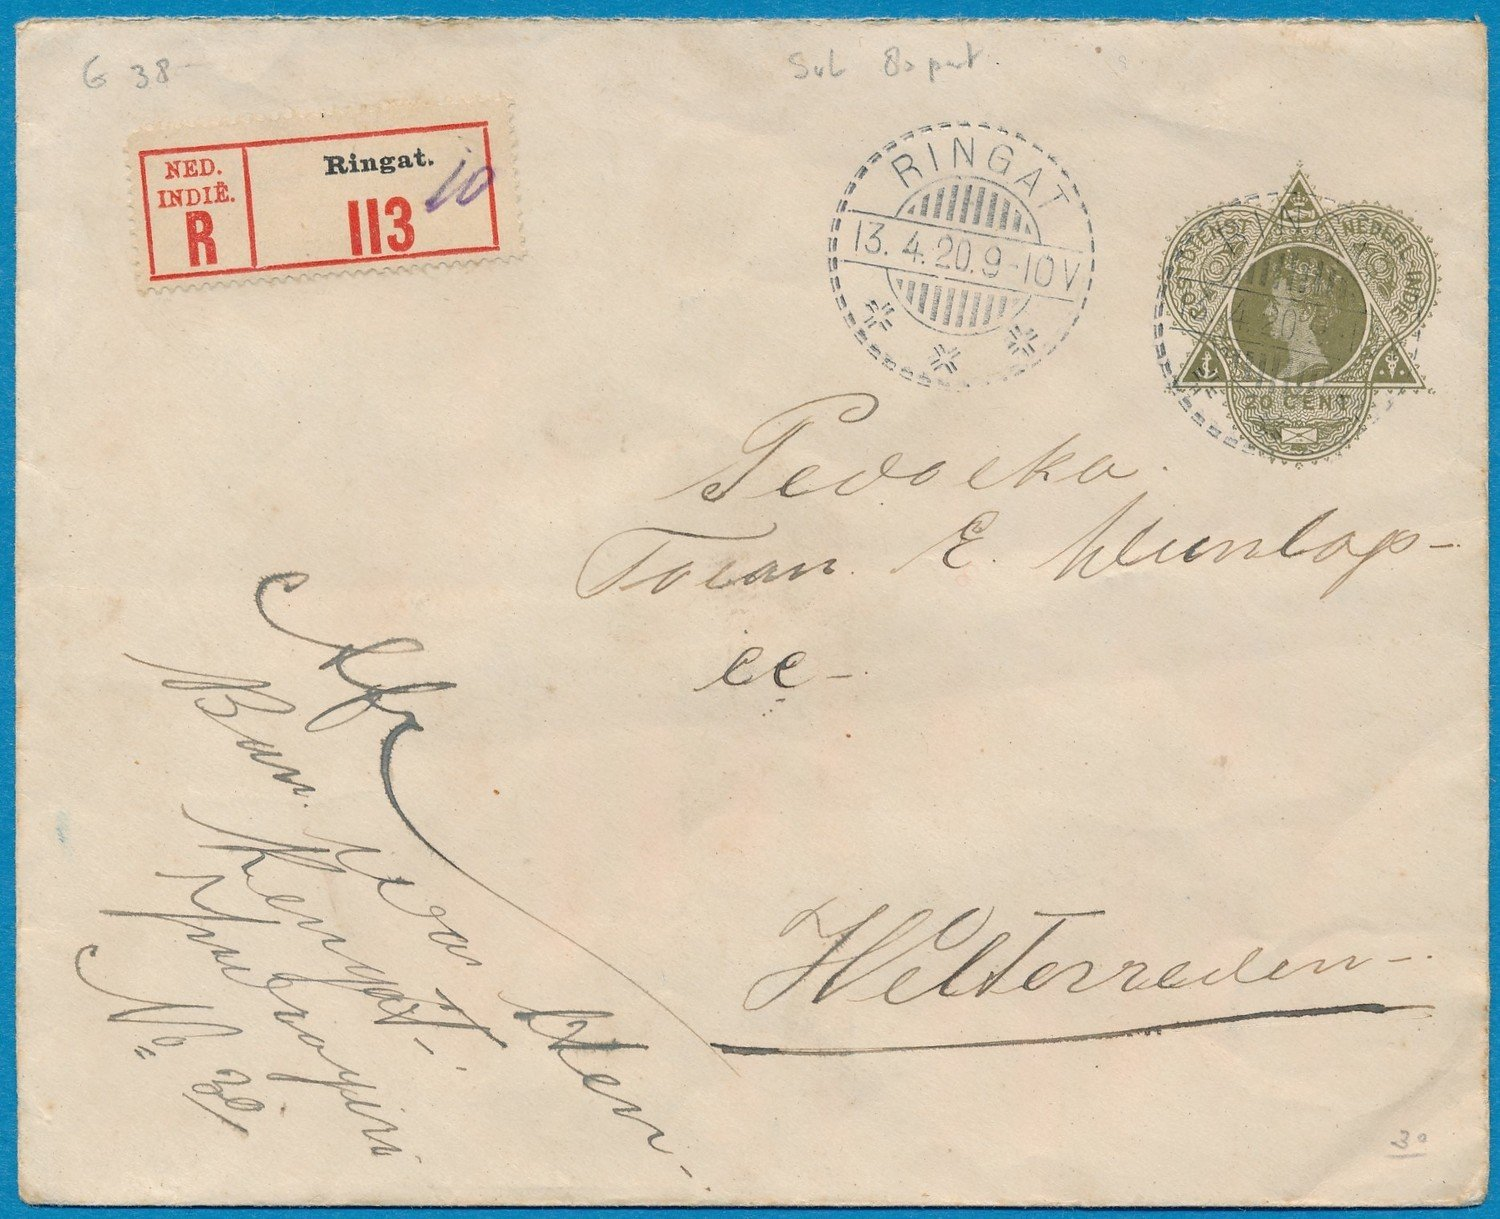 NETHERLANDS EAST INDIES R envelope 1920 Ringatt